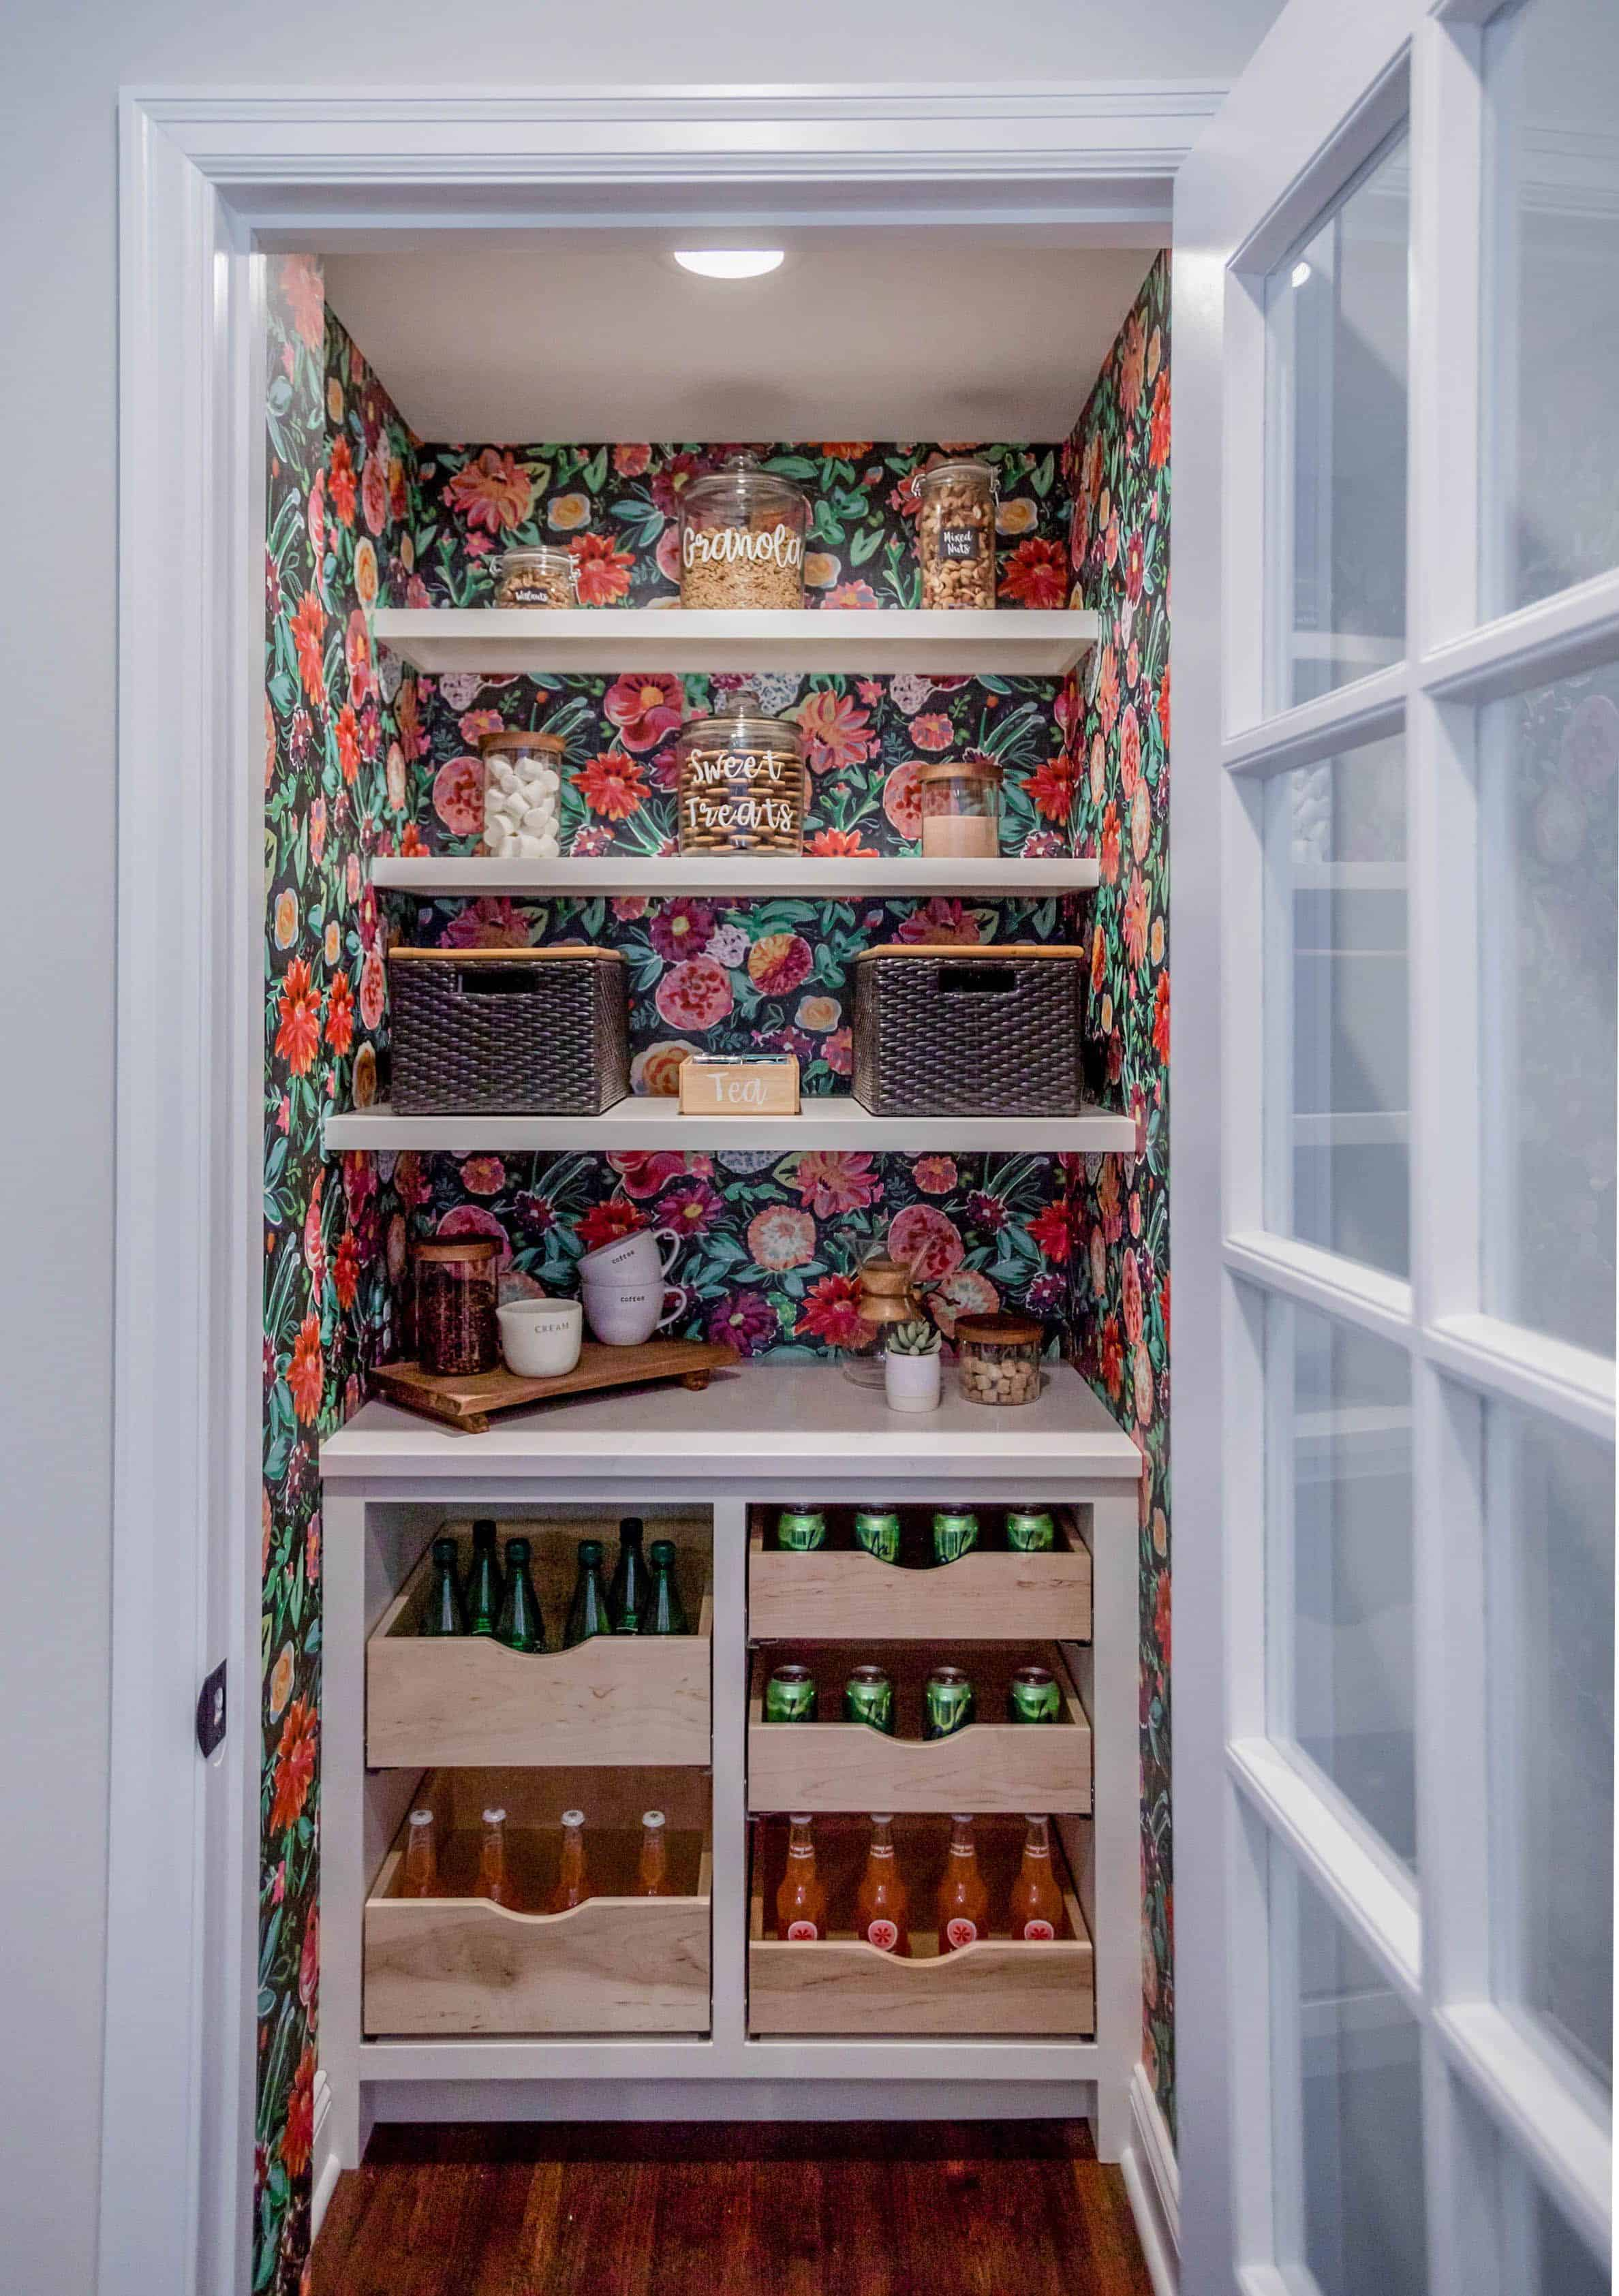 wallpapder with pantry